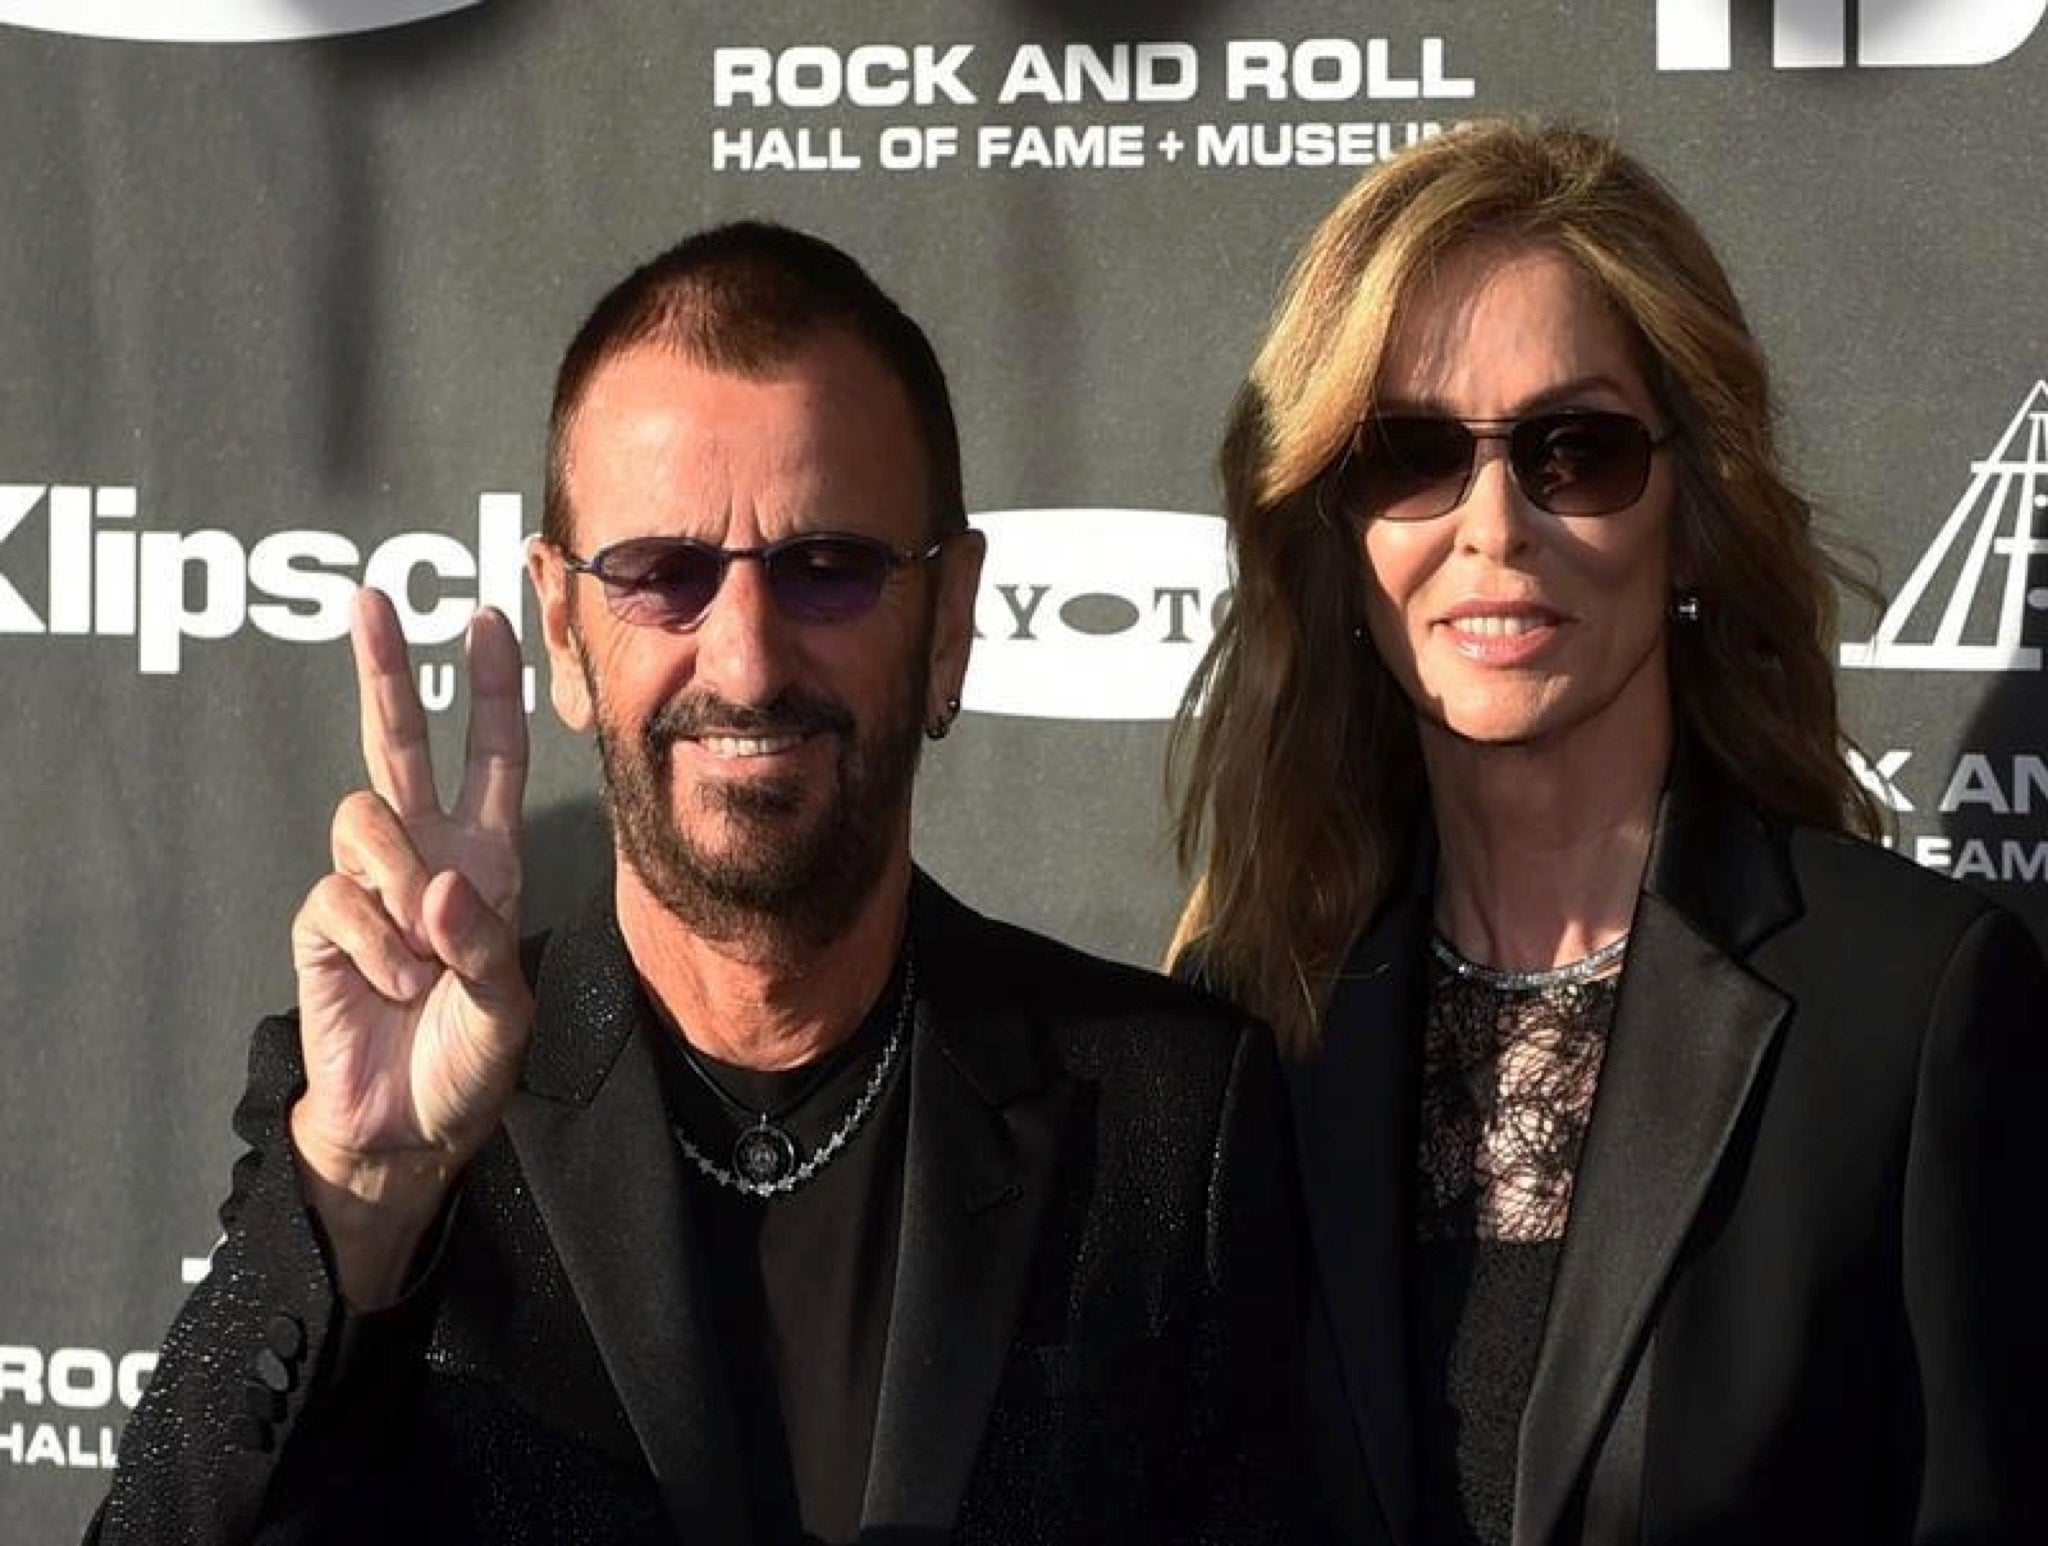 Ringo Starr Sells Off Drum Kits And Other Beatles Stuff As Part Of Downsize Move The Independent